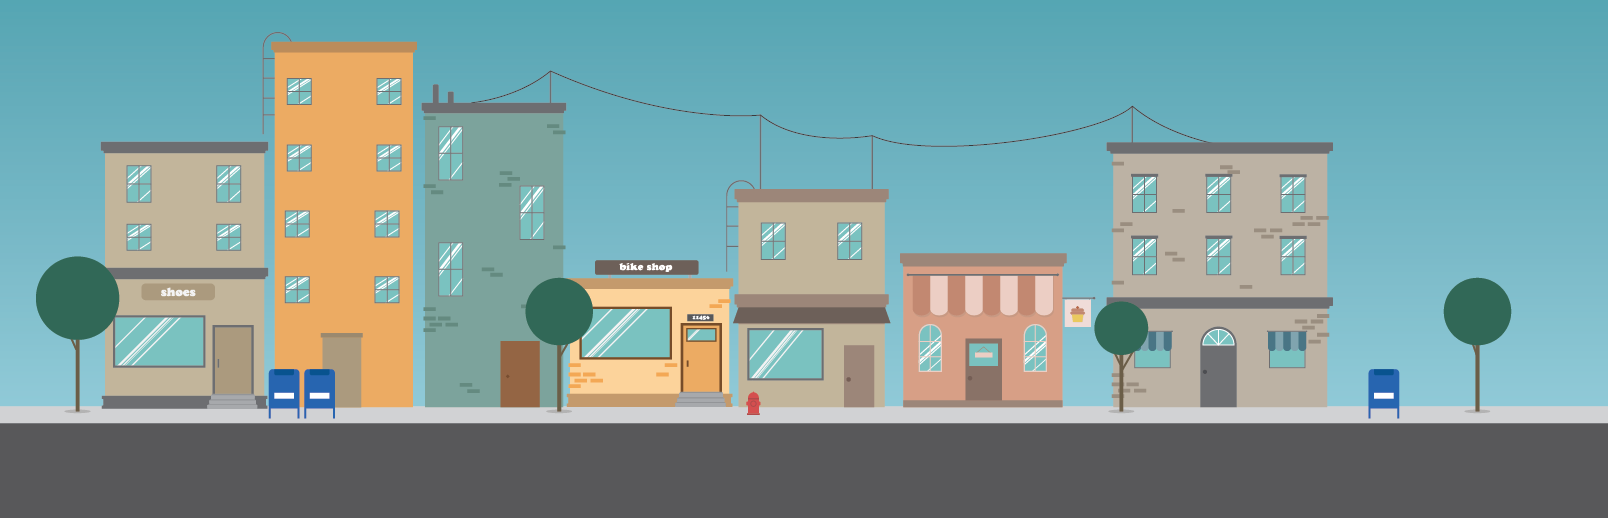 local_businesses-01.png